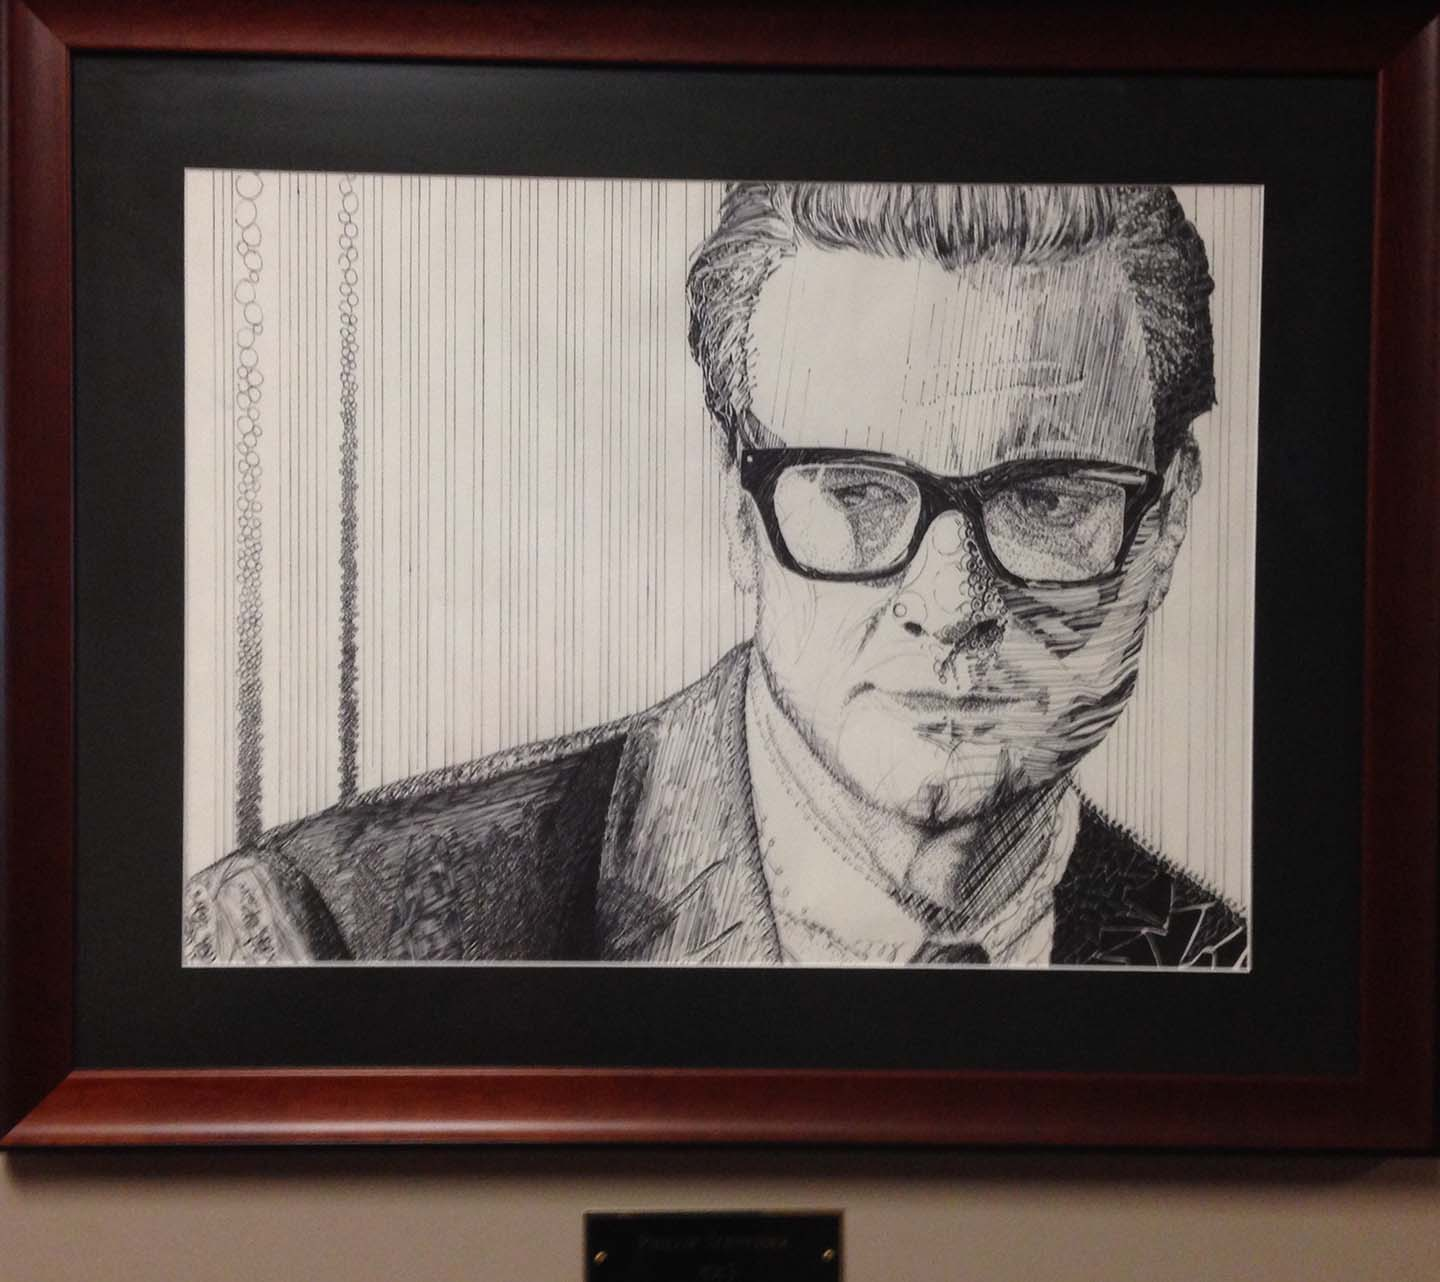 Artwork Middle-Aged Business Man Pencil Sketch